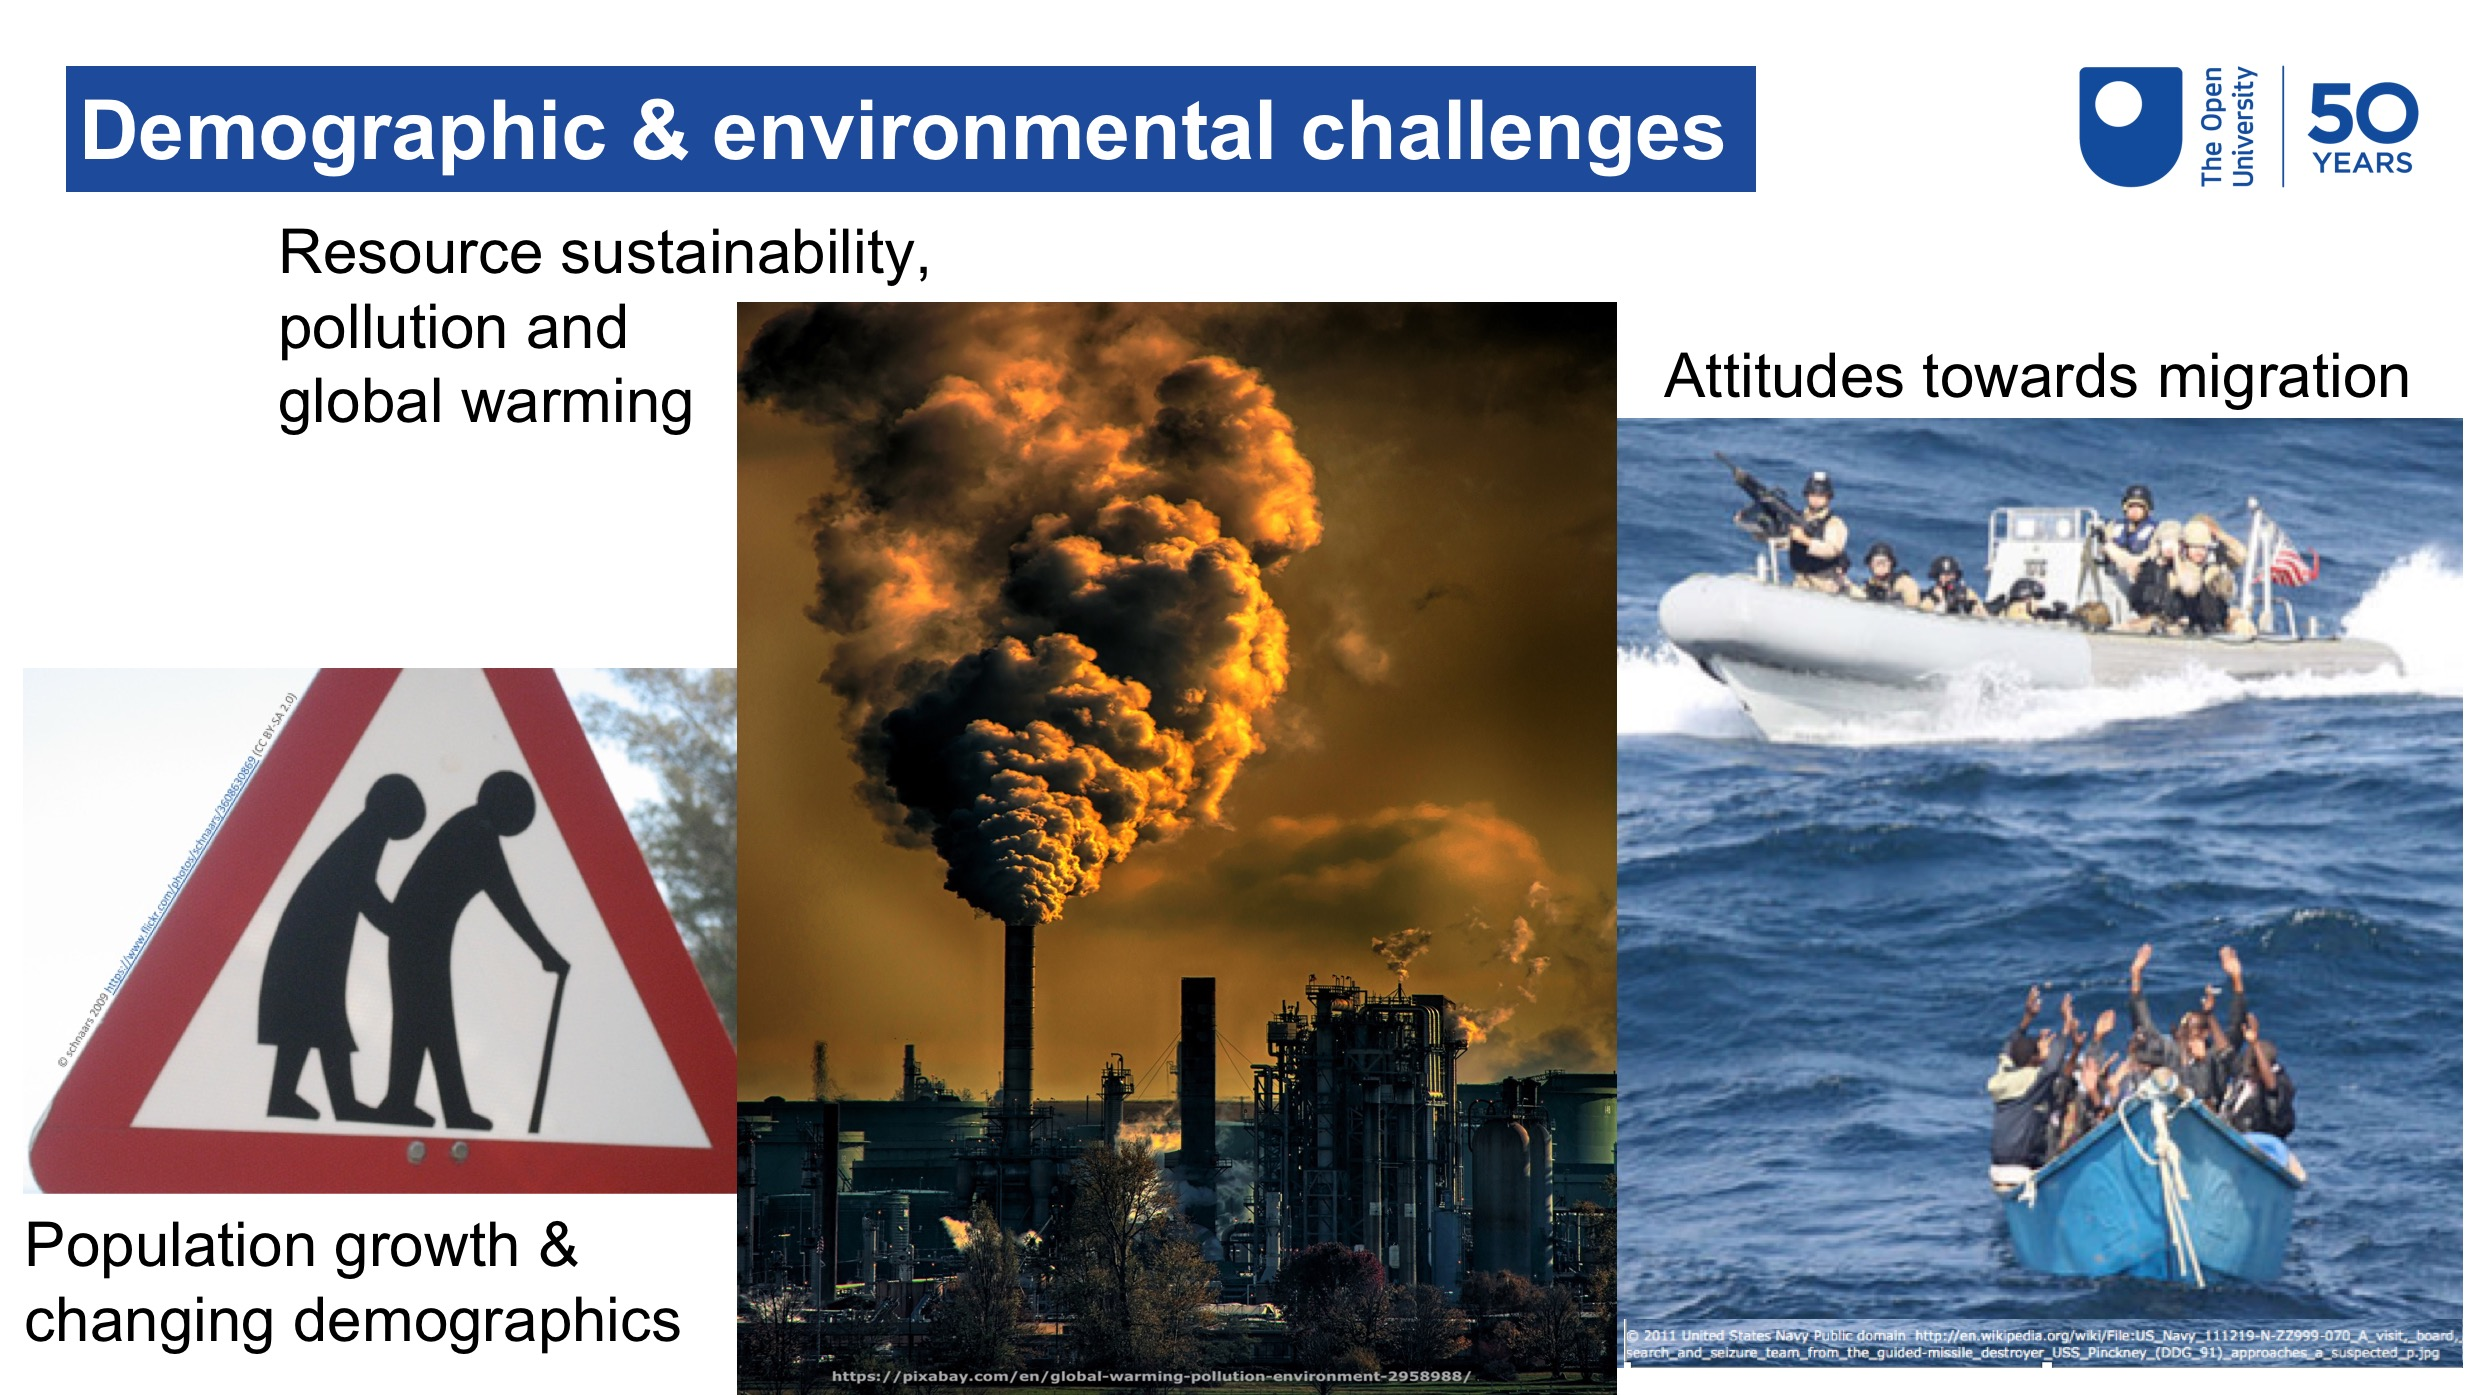 Images representing challenges such as population growth and changing demographics; resources sustainability, pollution and global warming; and negative attitudes towards migration